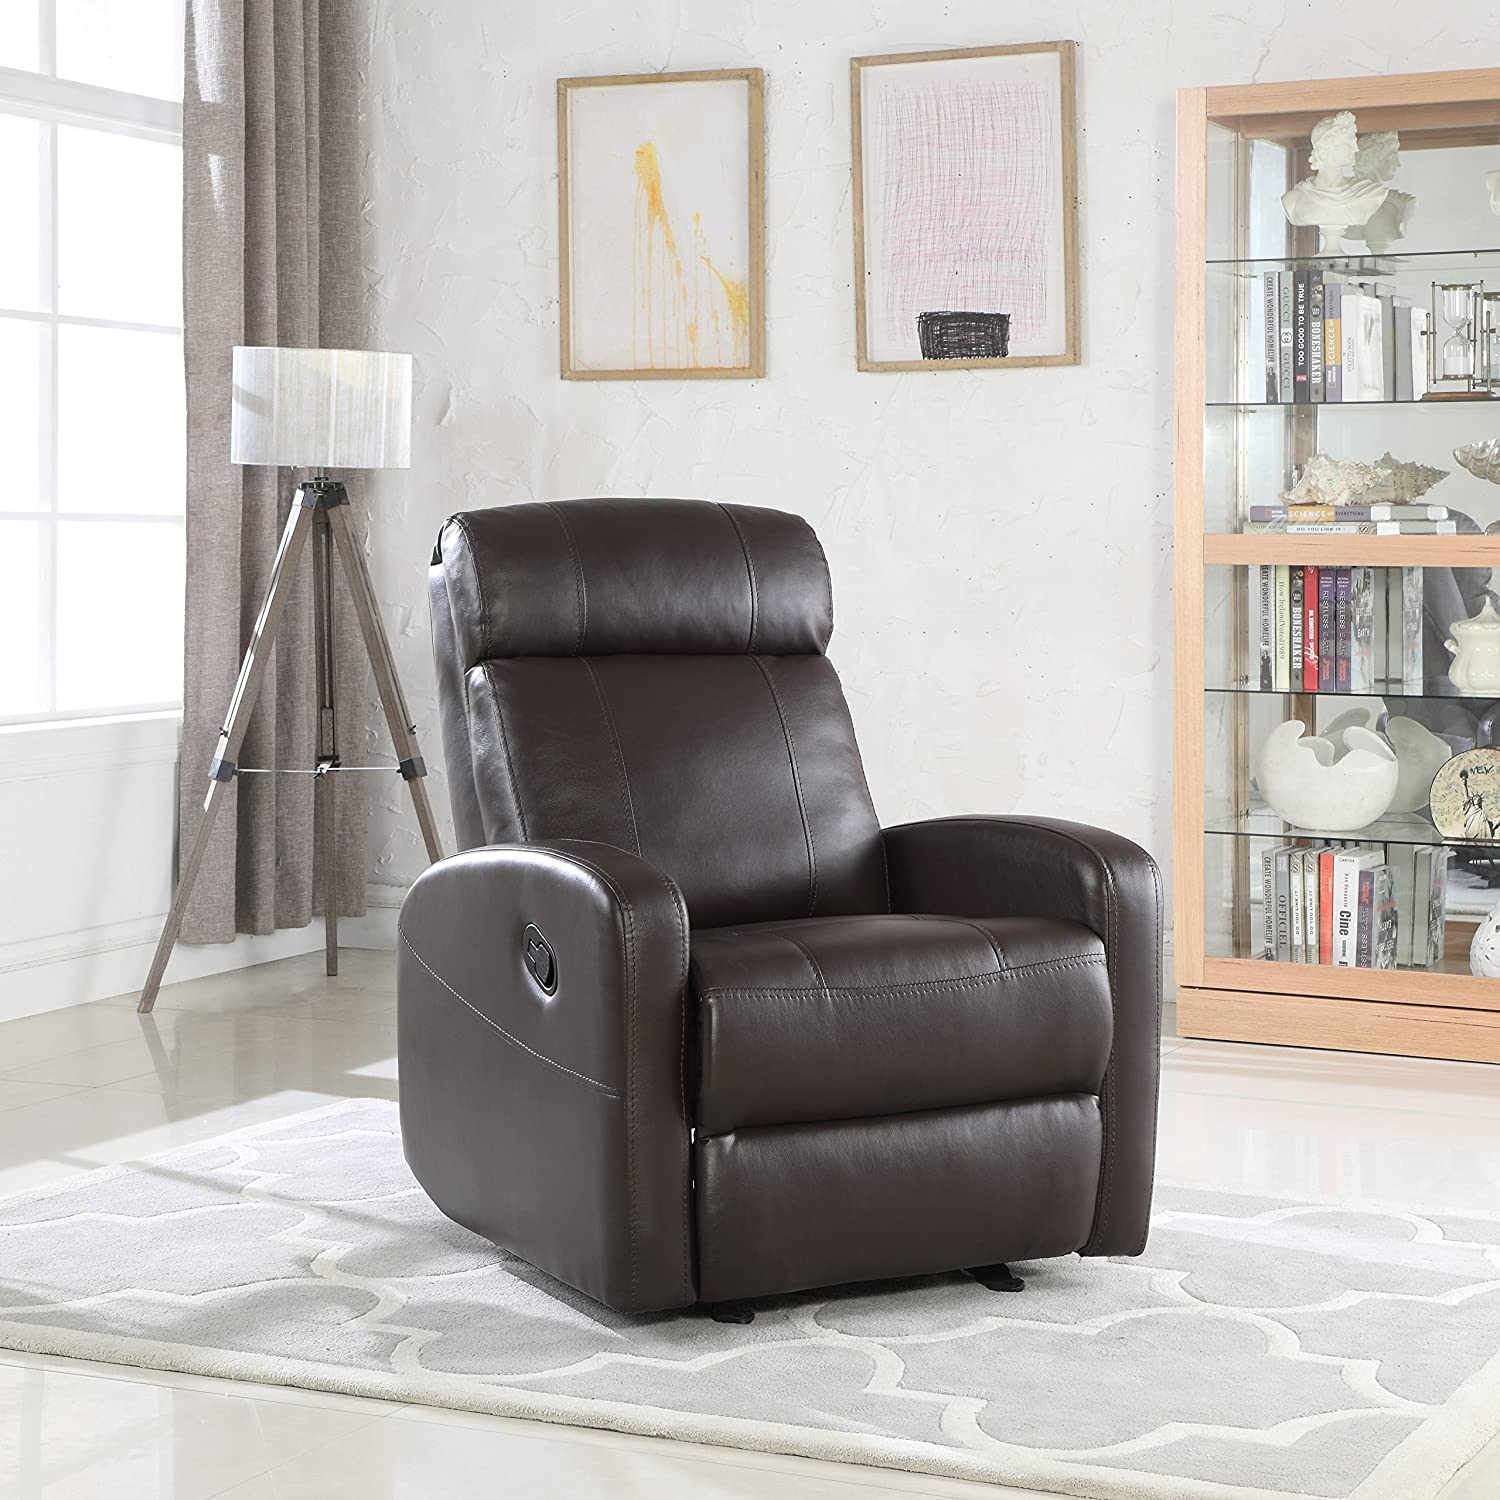 Amazon.com Overstuffed Sleek Modern Living Room Faux Leather Recliner Chair (Brown) Kitchen u0026 Dining & Amazon.com: Overstuffed Sleek Modern Living Room Faux Leather ...